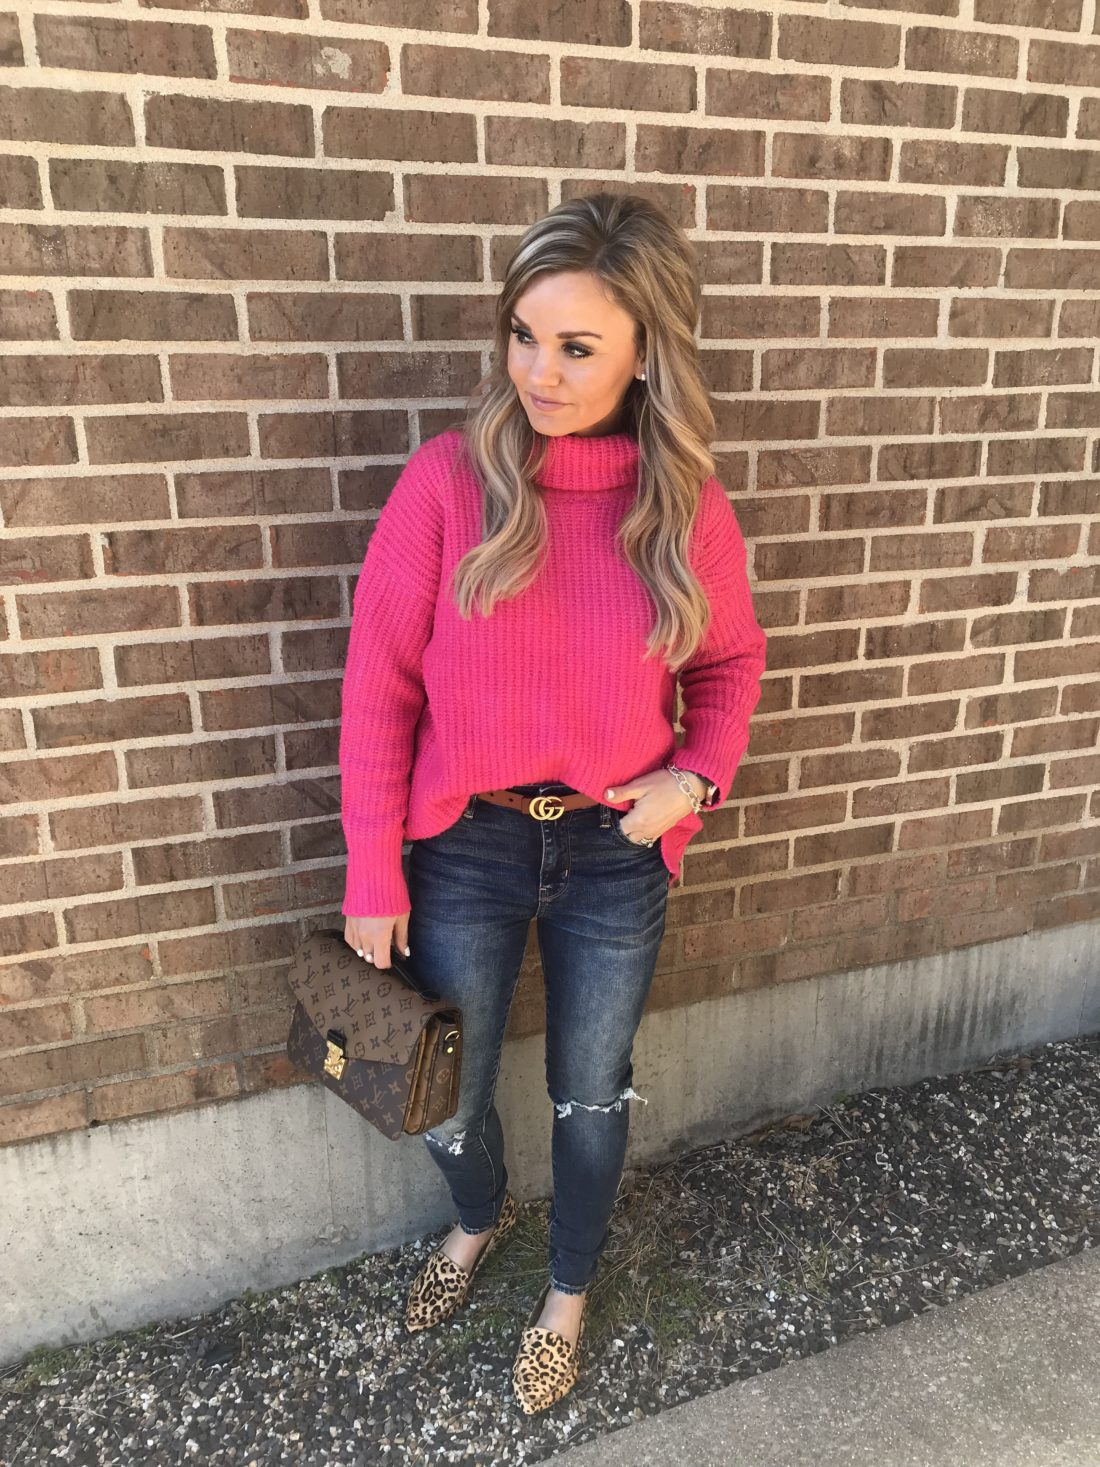 Casual outfit for transitioning to spring. Hot Pink Sweater with high waisted jeans and leopard flats.